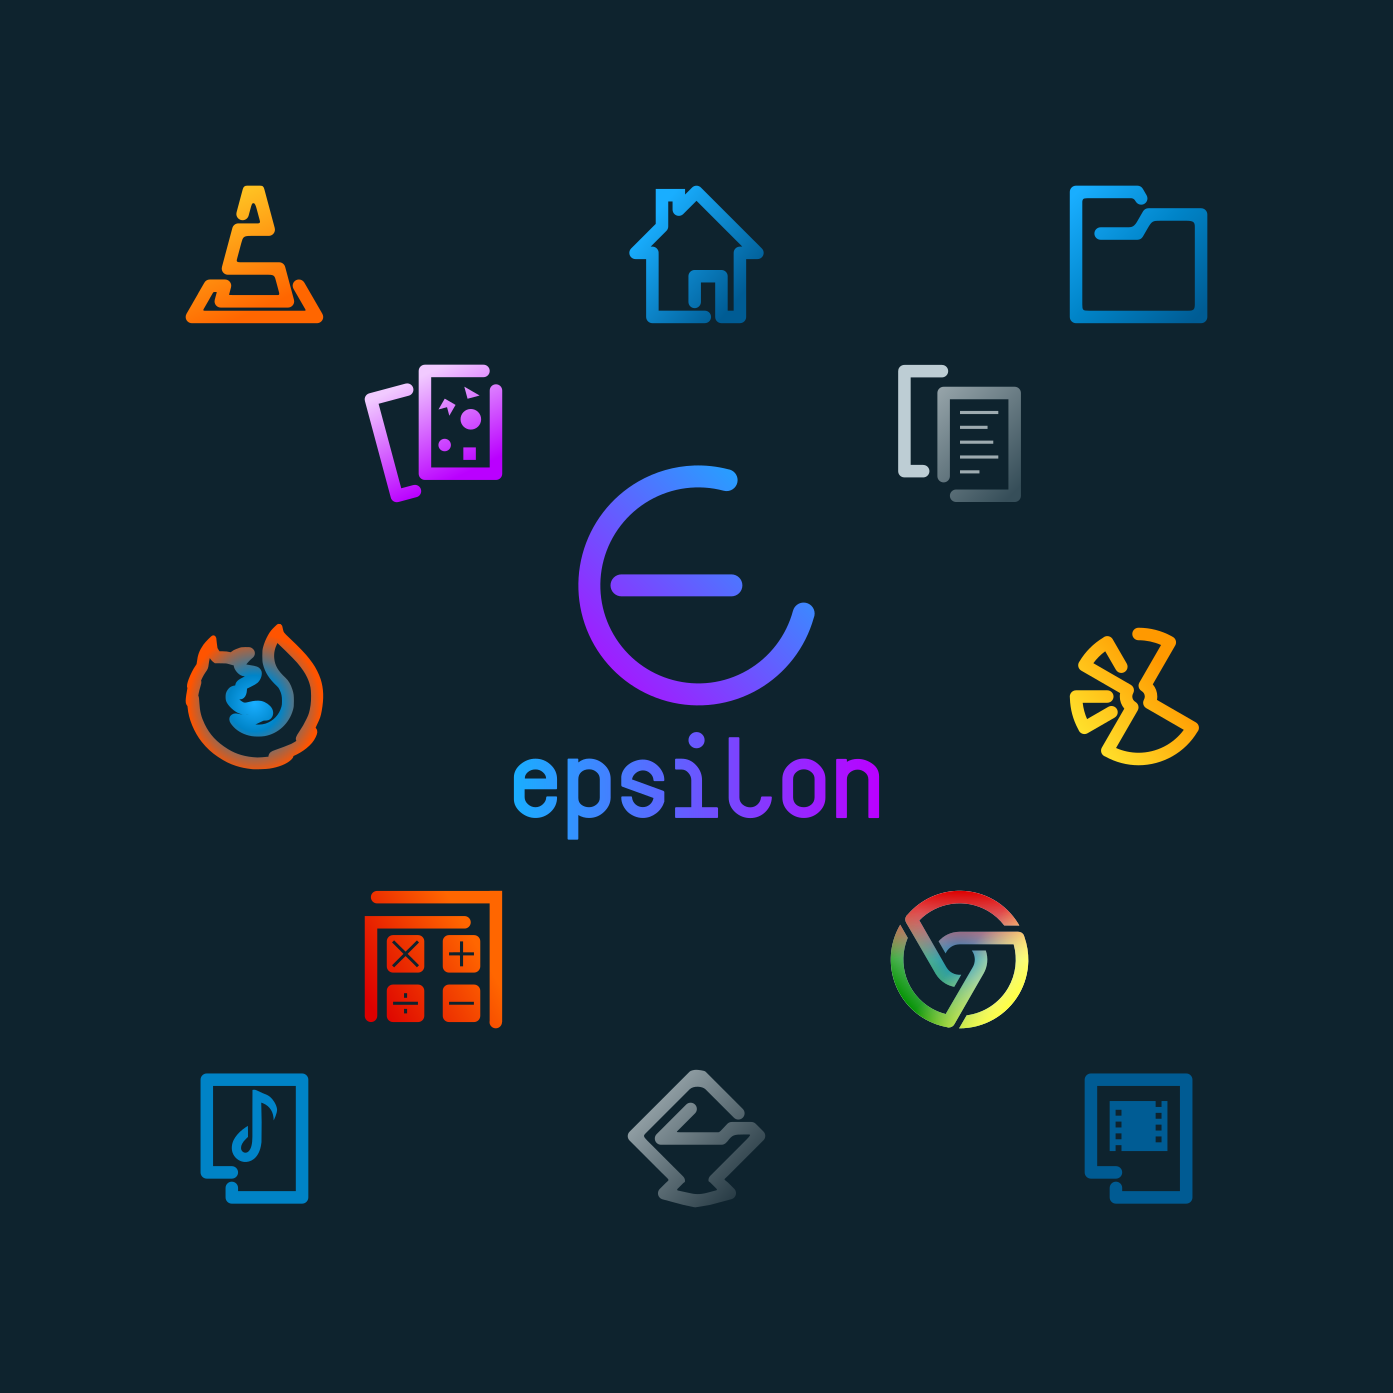 Epsilon Icons, New Modern Icons theme for Ubuntu and Other